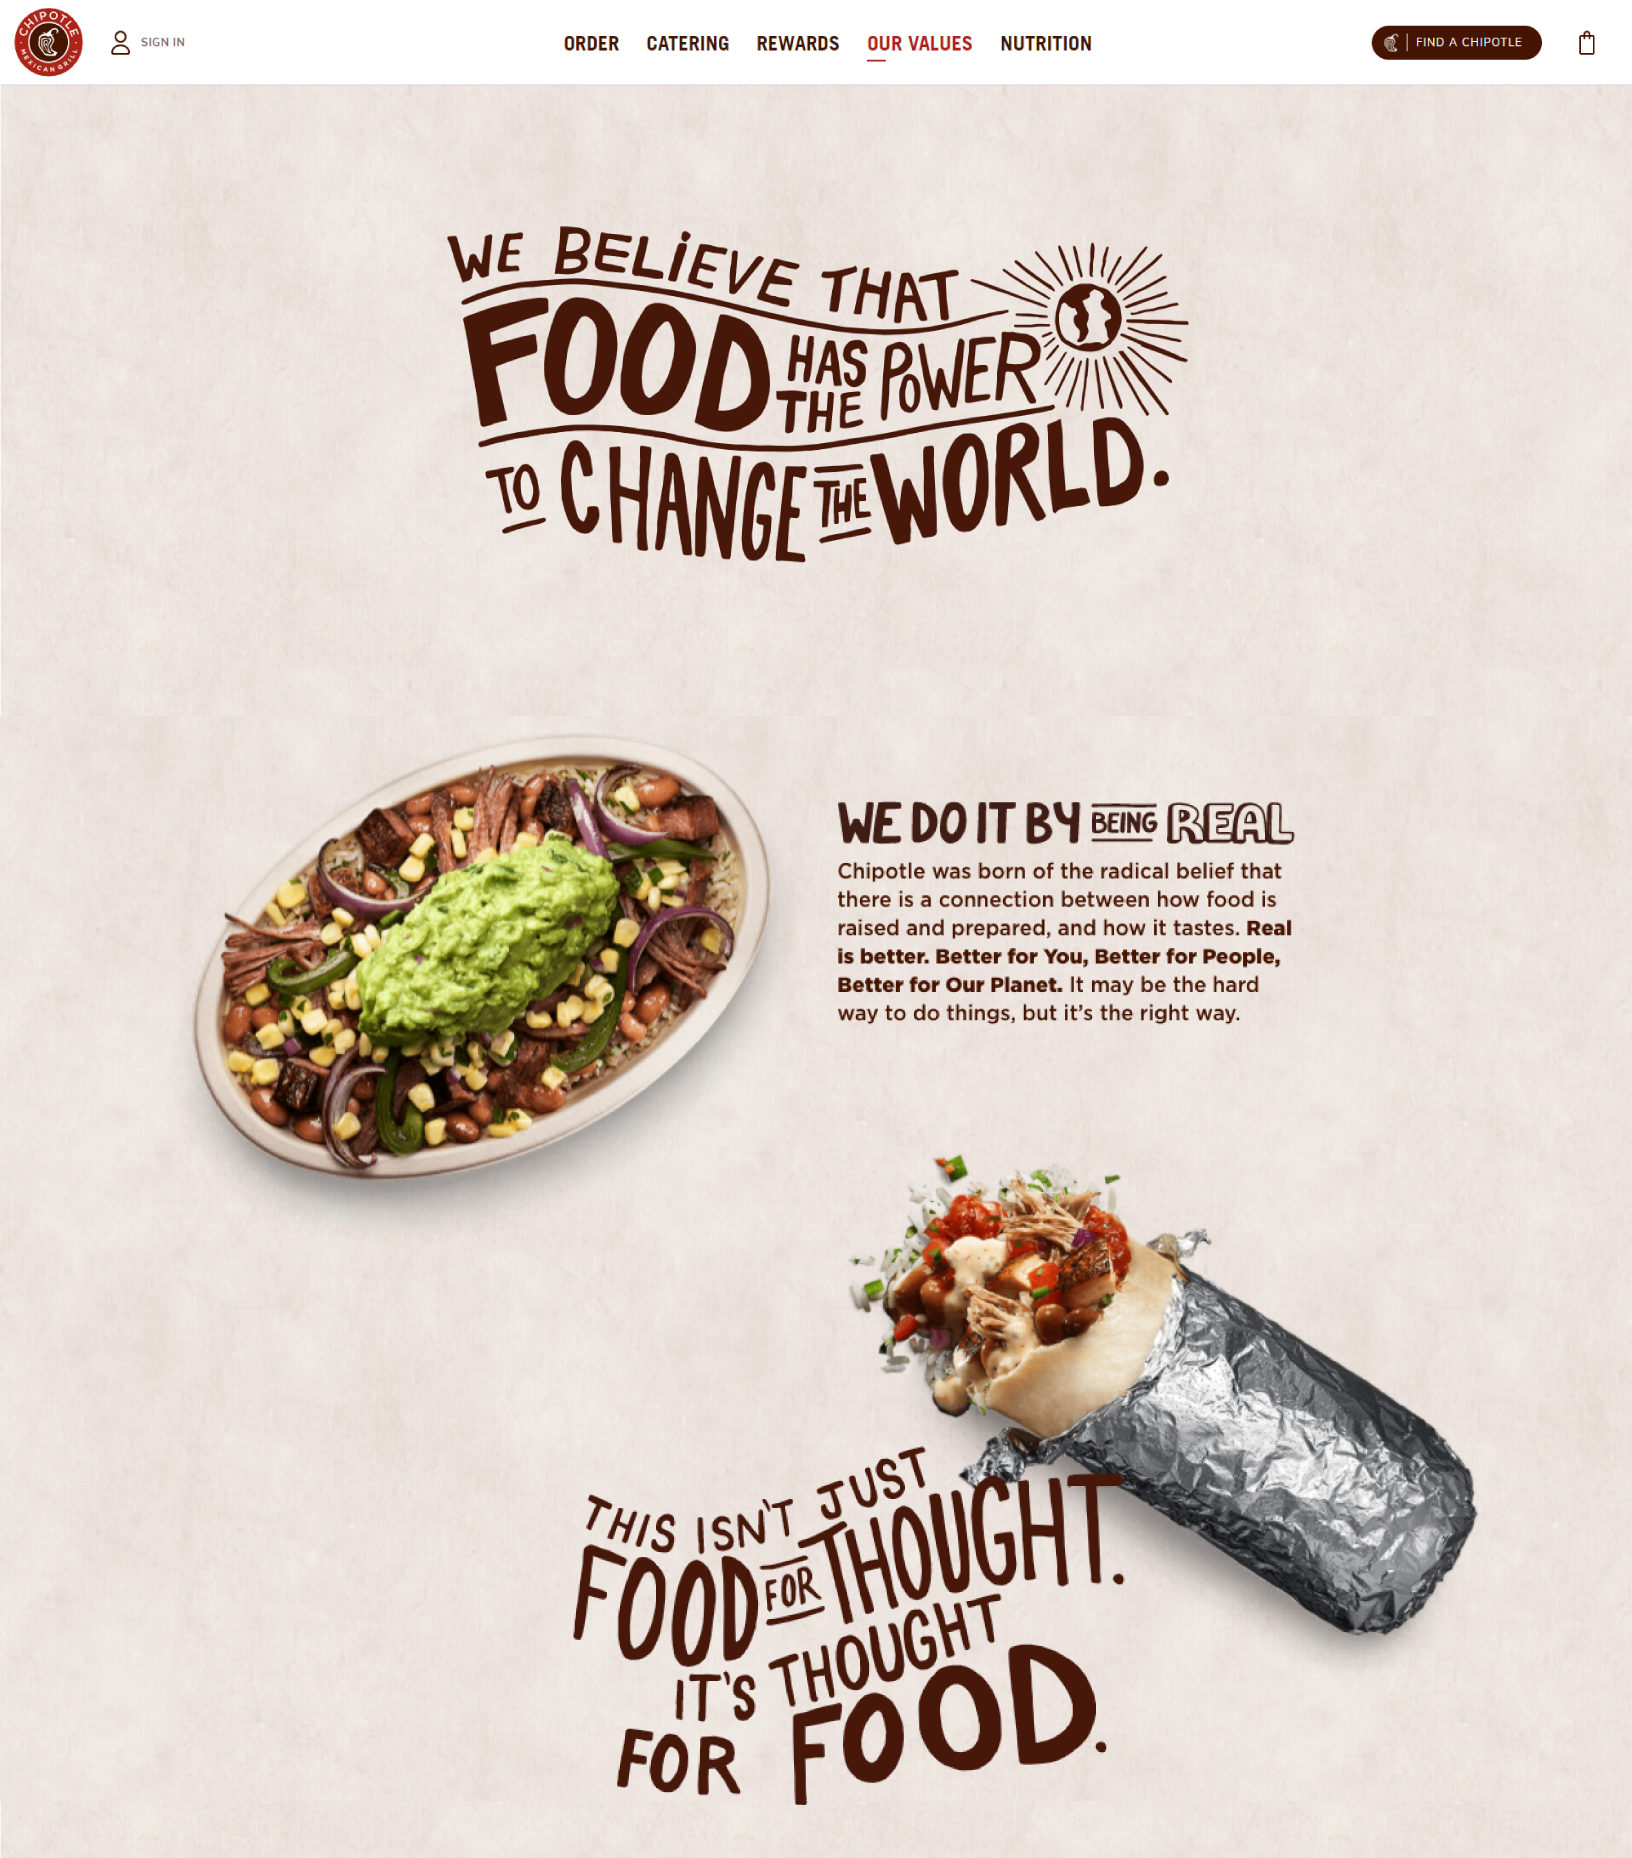 Chipotle Restaurant Story